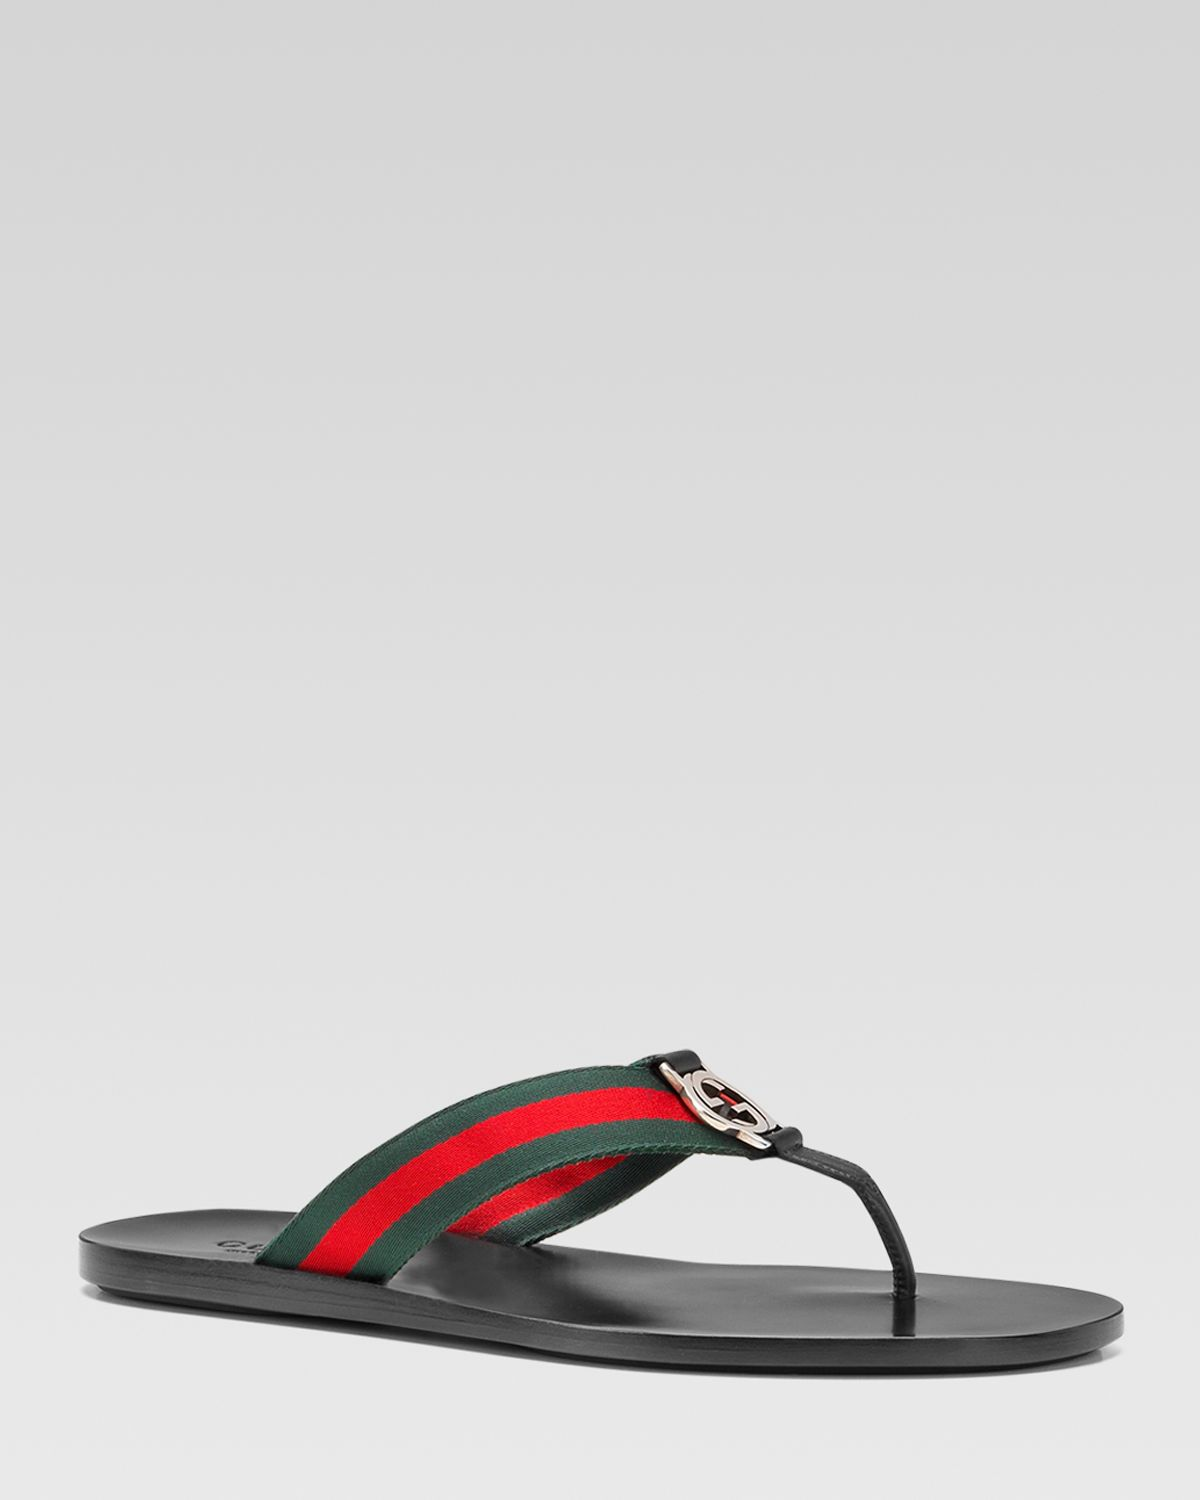 b731aa04160bc2 Lyst - Gucci Gg Line Signature Web Thong Sandals in Black for Men